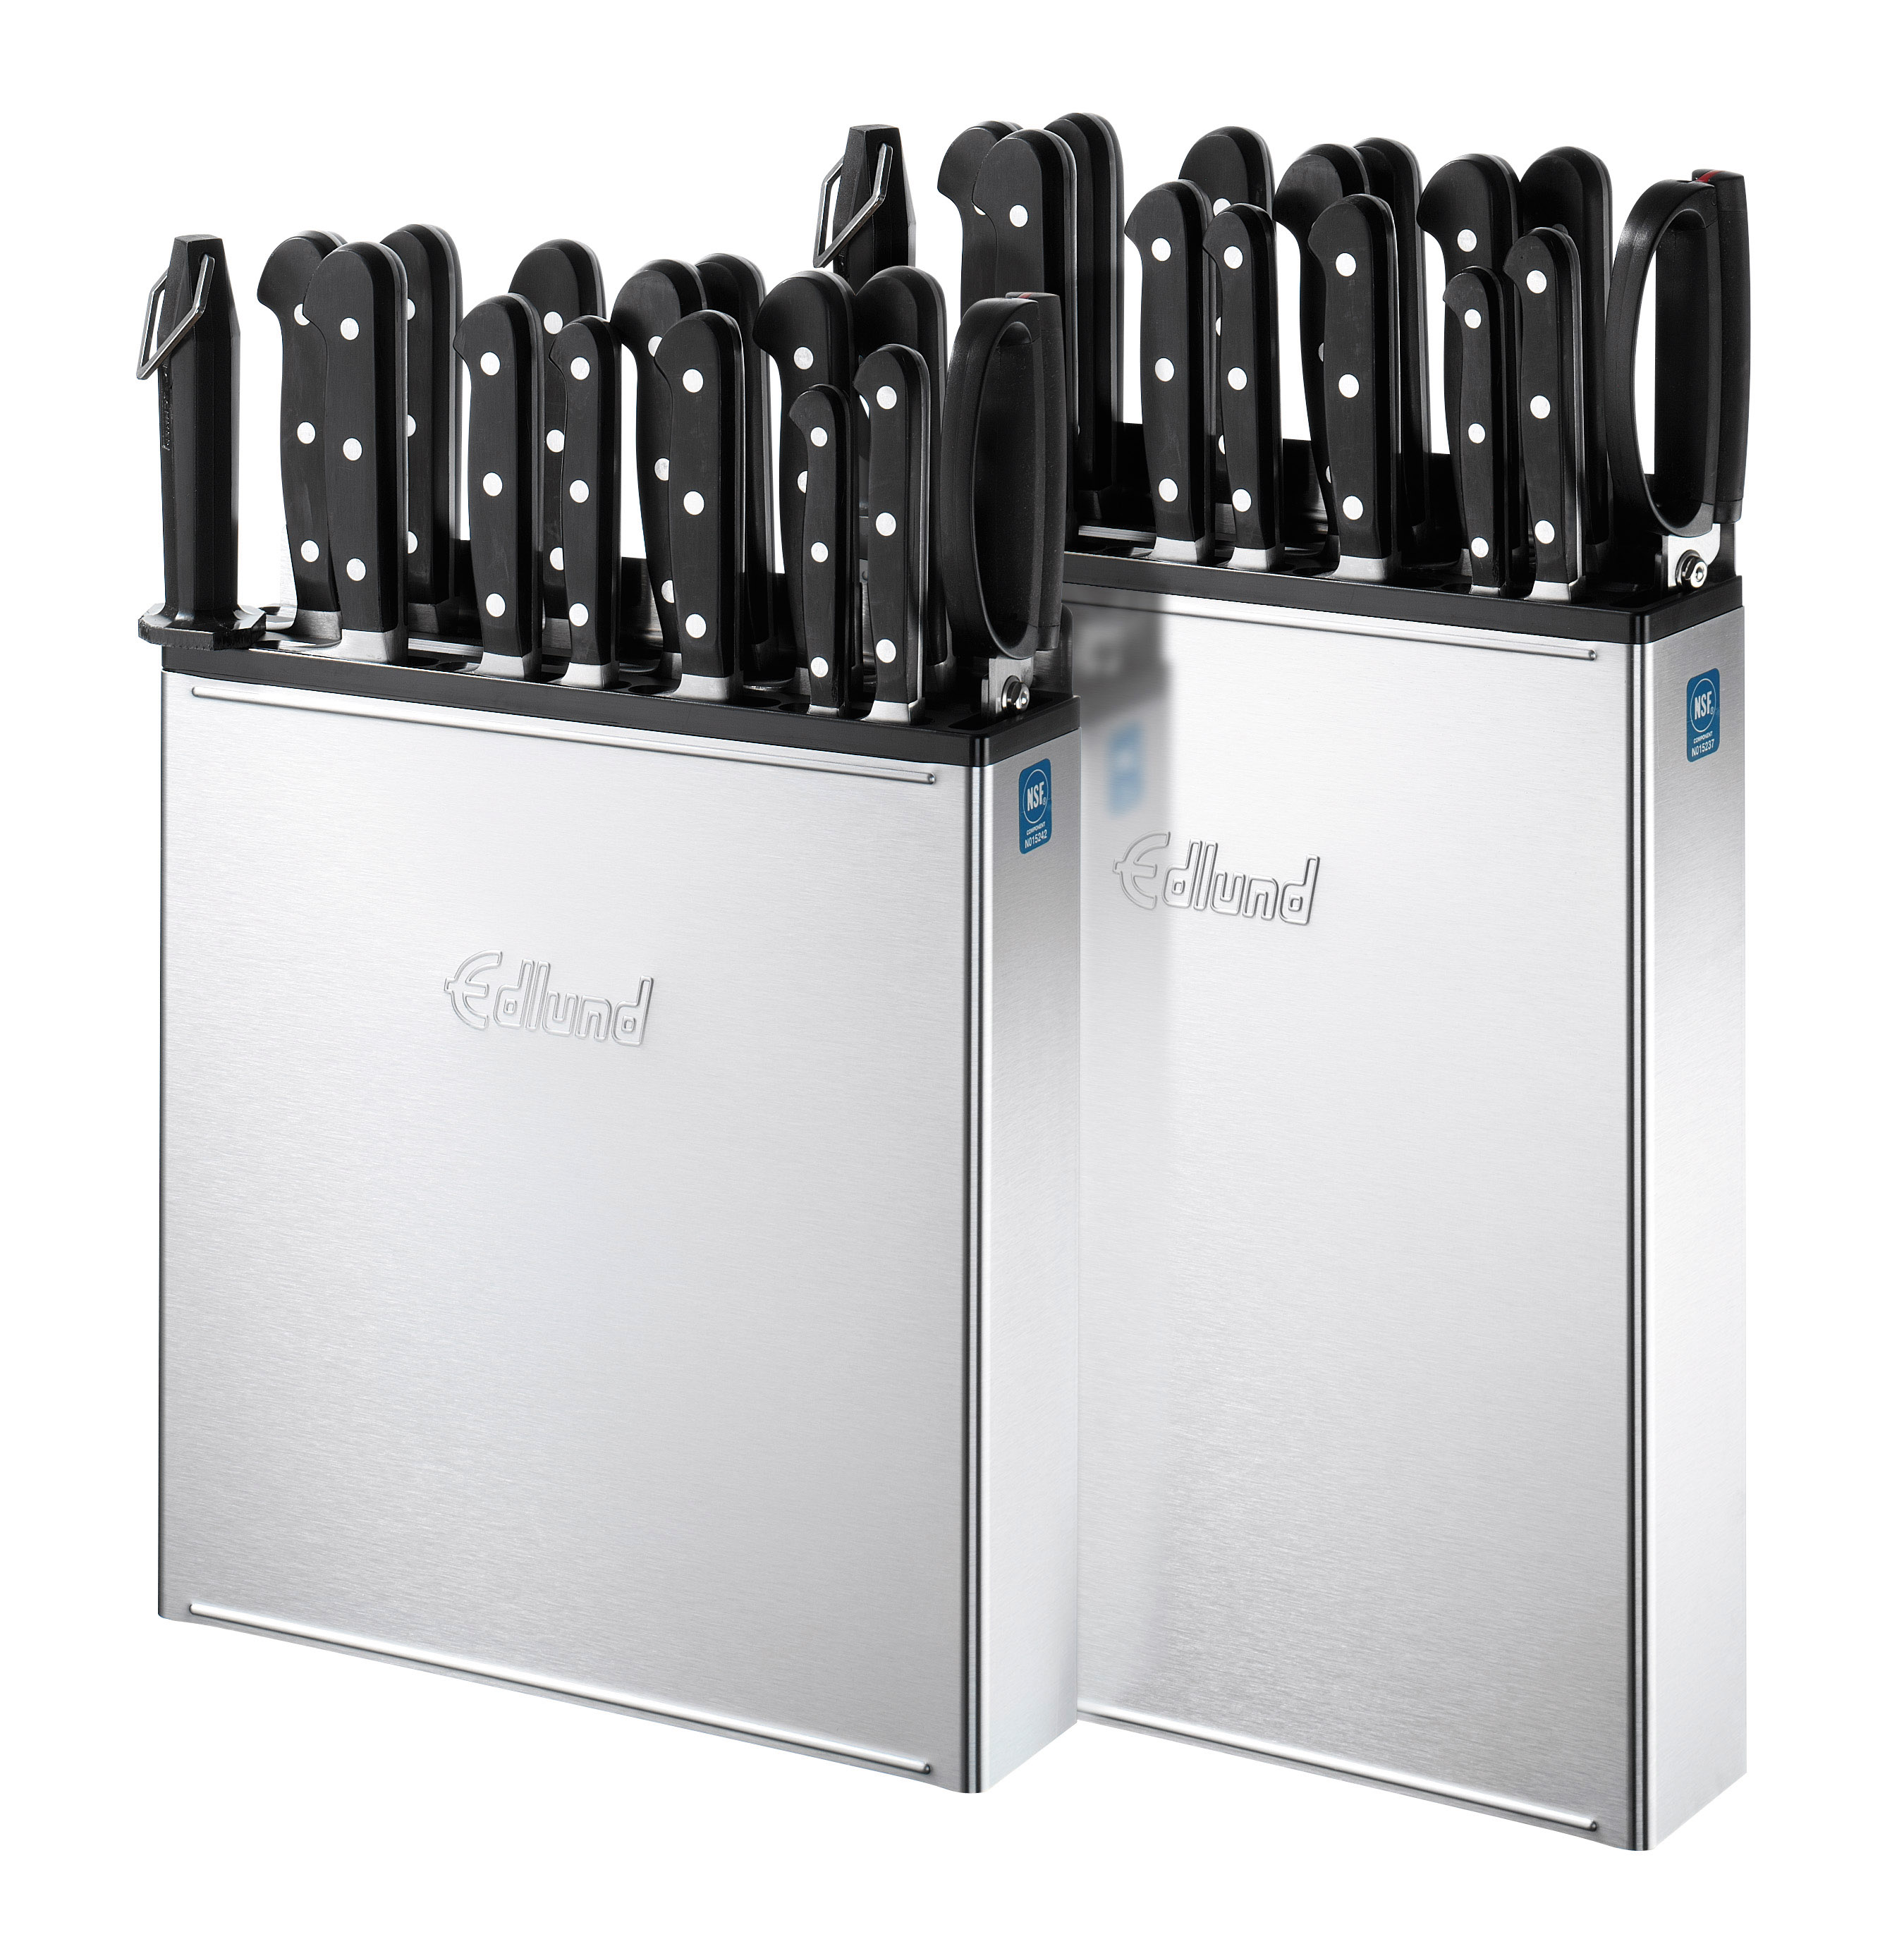 Stainless Steel Knife Racks